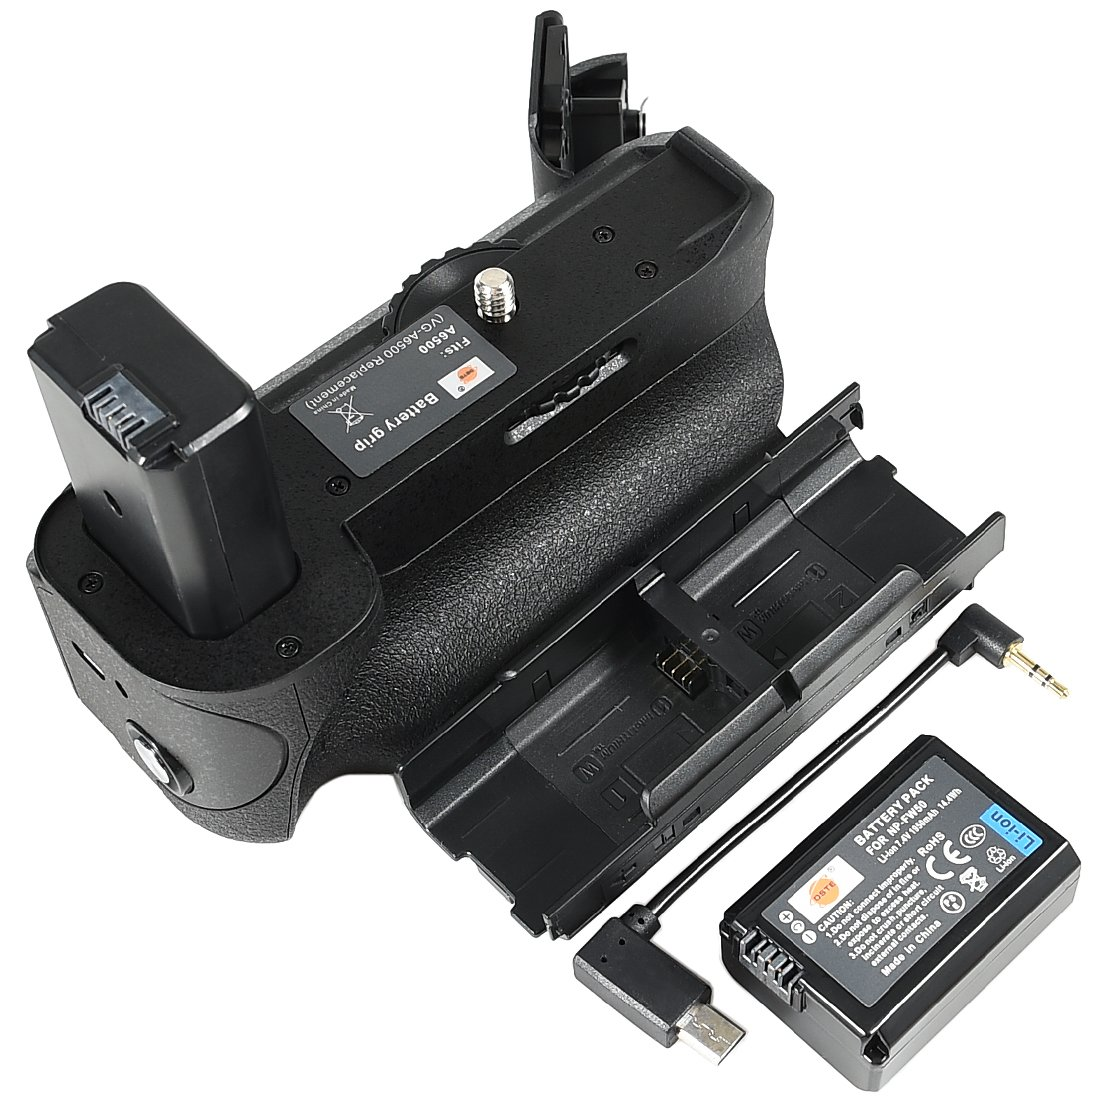 DSTE Pro VG-6500 Vertical Battery Grip + NP-FW50 for Sony A6500 Digital Camera as NP-FW50